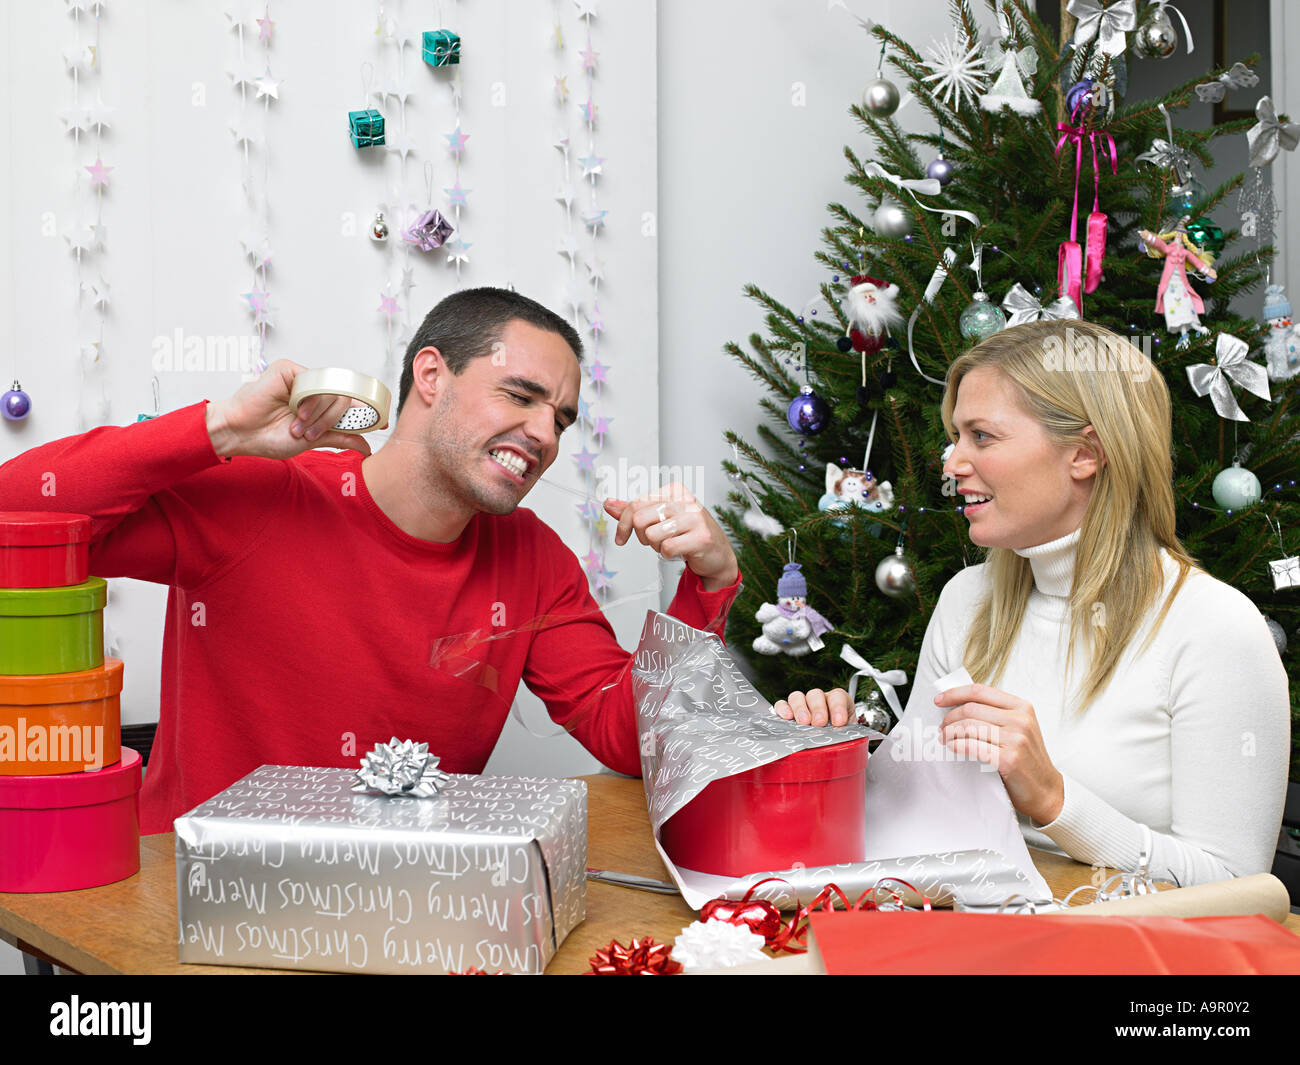 Couple wrapping christmas presents - Stock Image